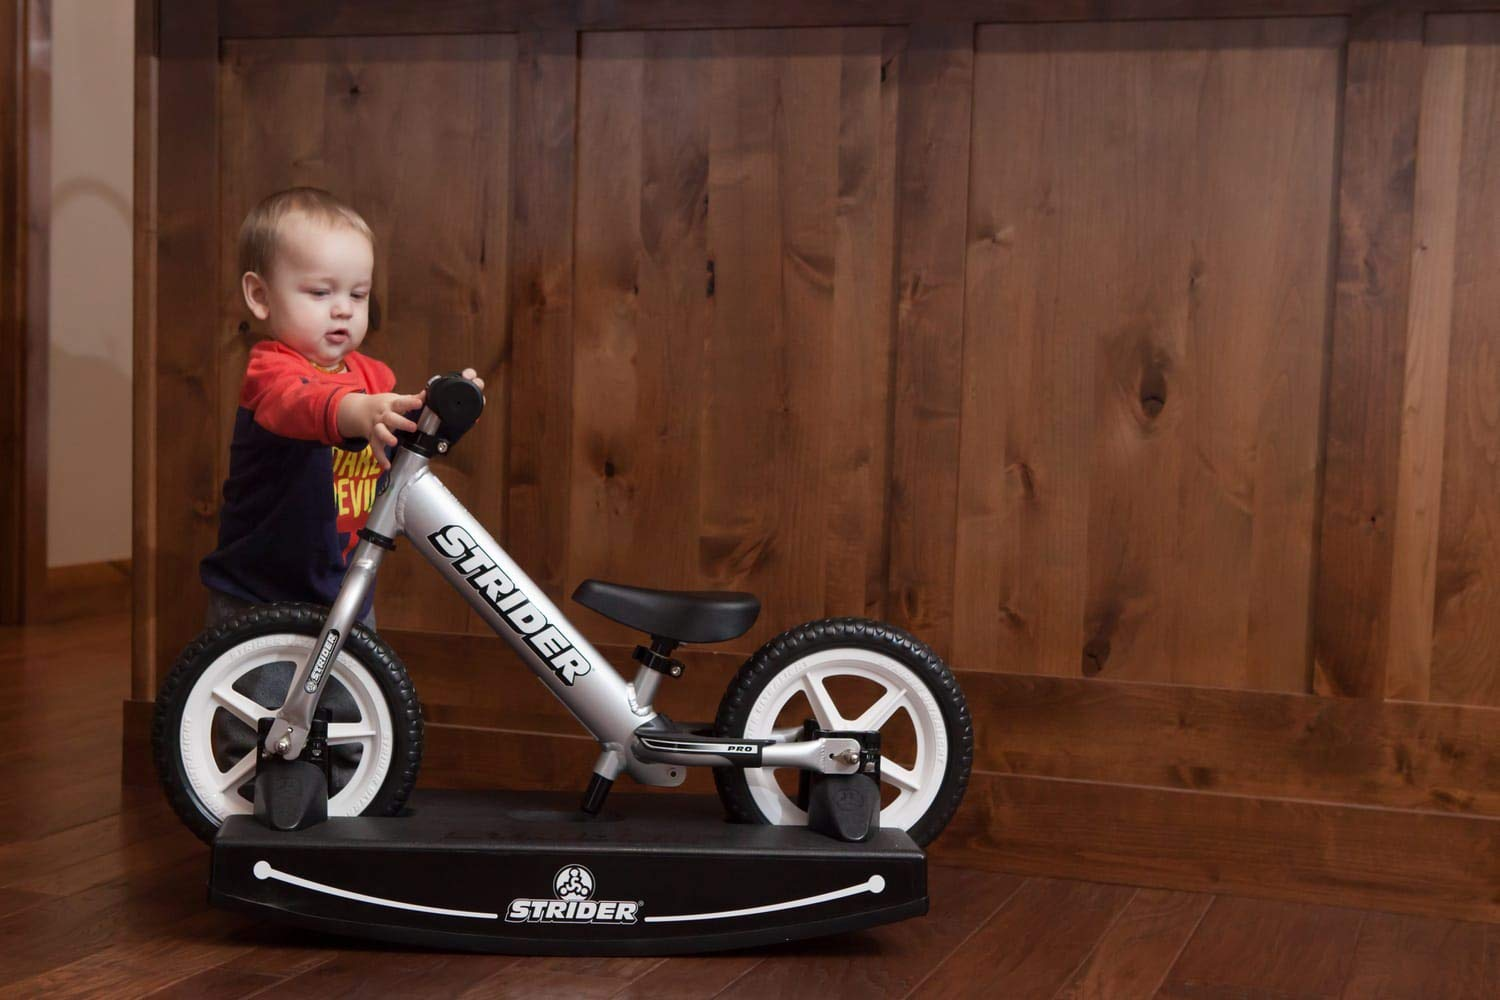 Strider - 12 Pro Baby Bundle with Balance Bike and Rocking Base, Ages 6 Months to 5 Years, Silver by Strider (Image #5)